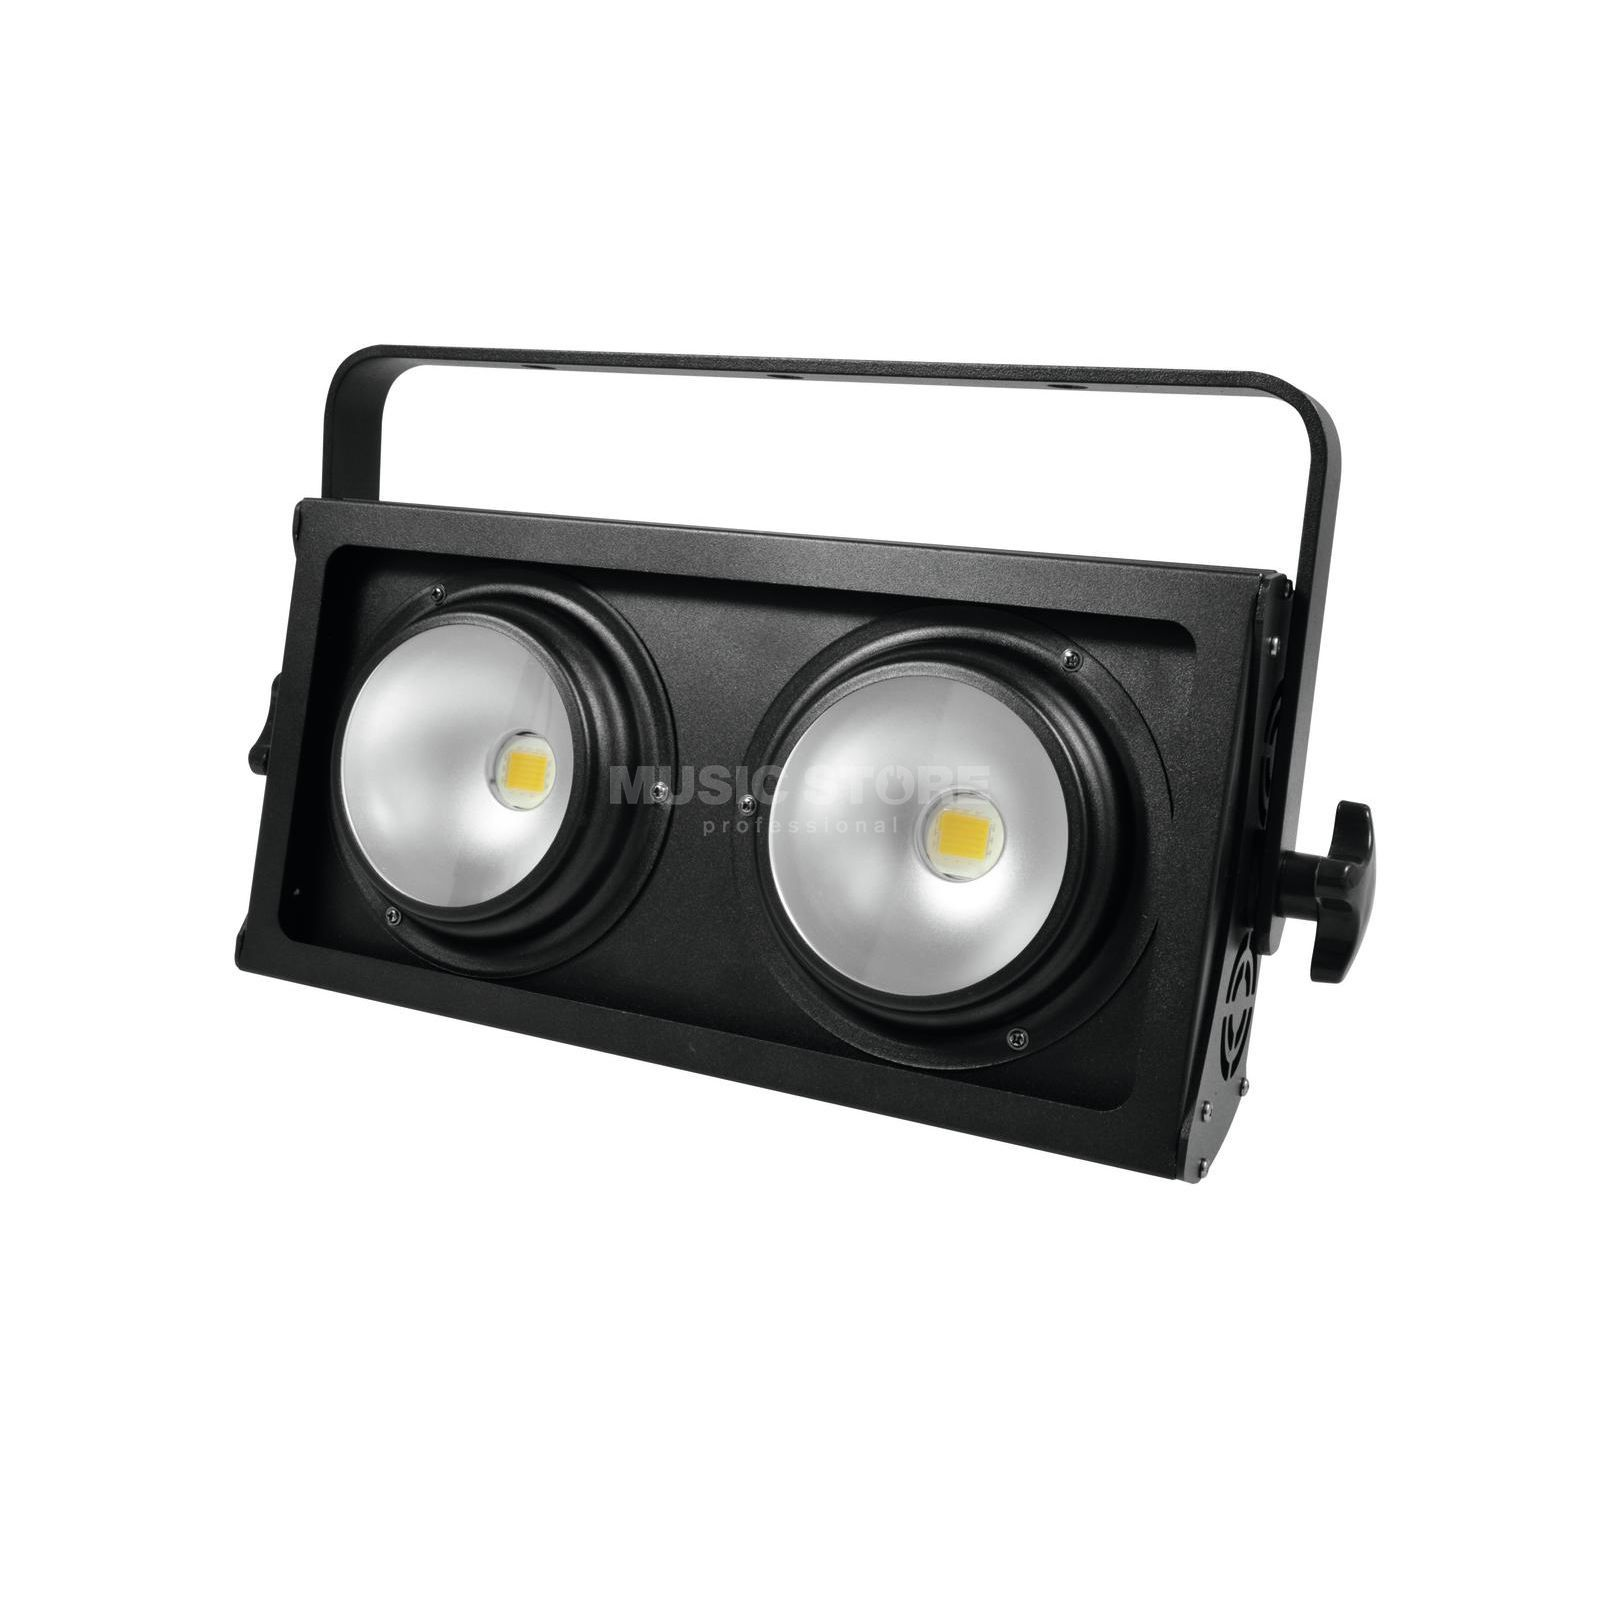 Eurolite Audience Blinder 2x100W LED COB 3200K Immagine prodotto